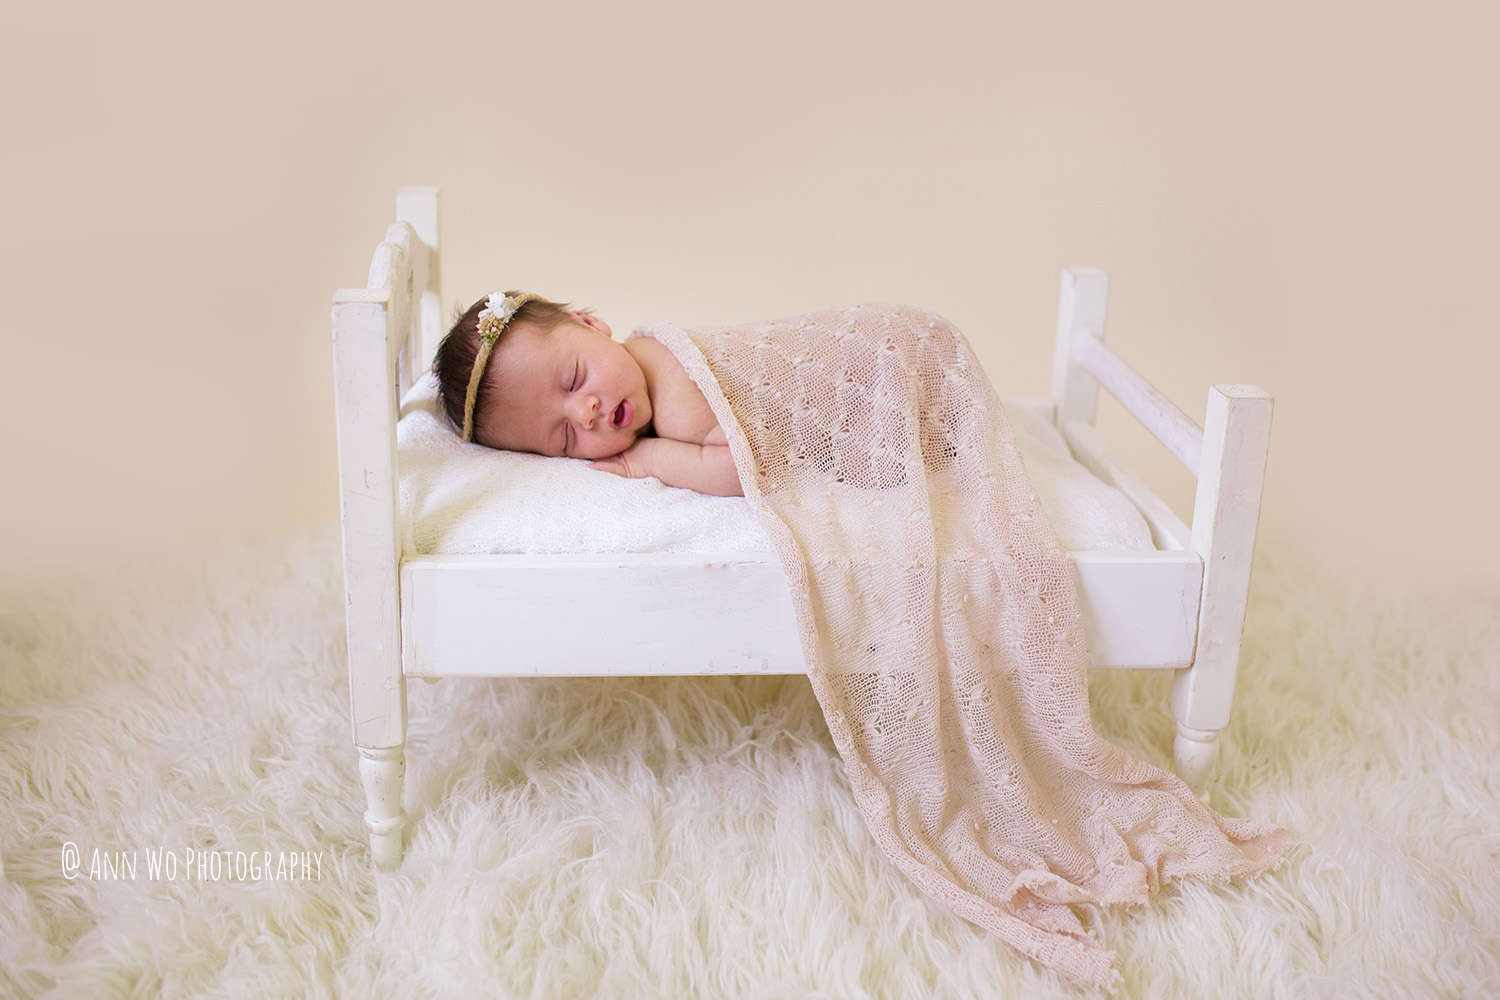 Newborn photography in London by Ann Wo white bed